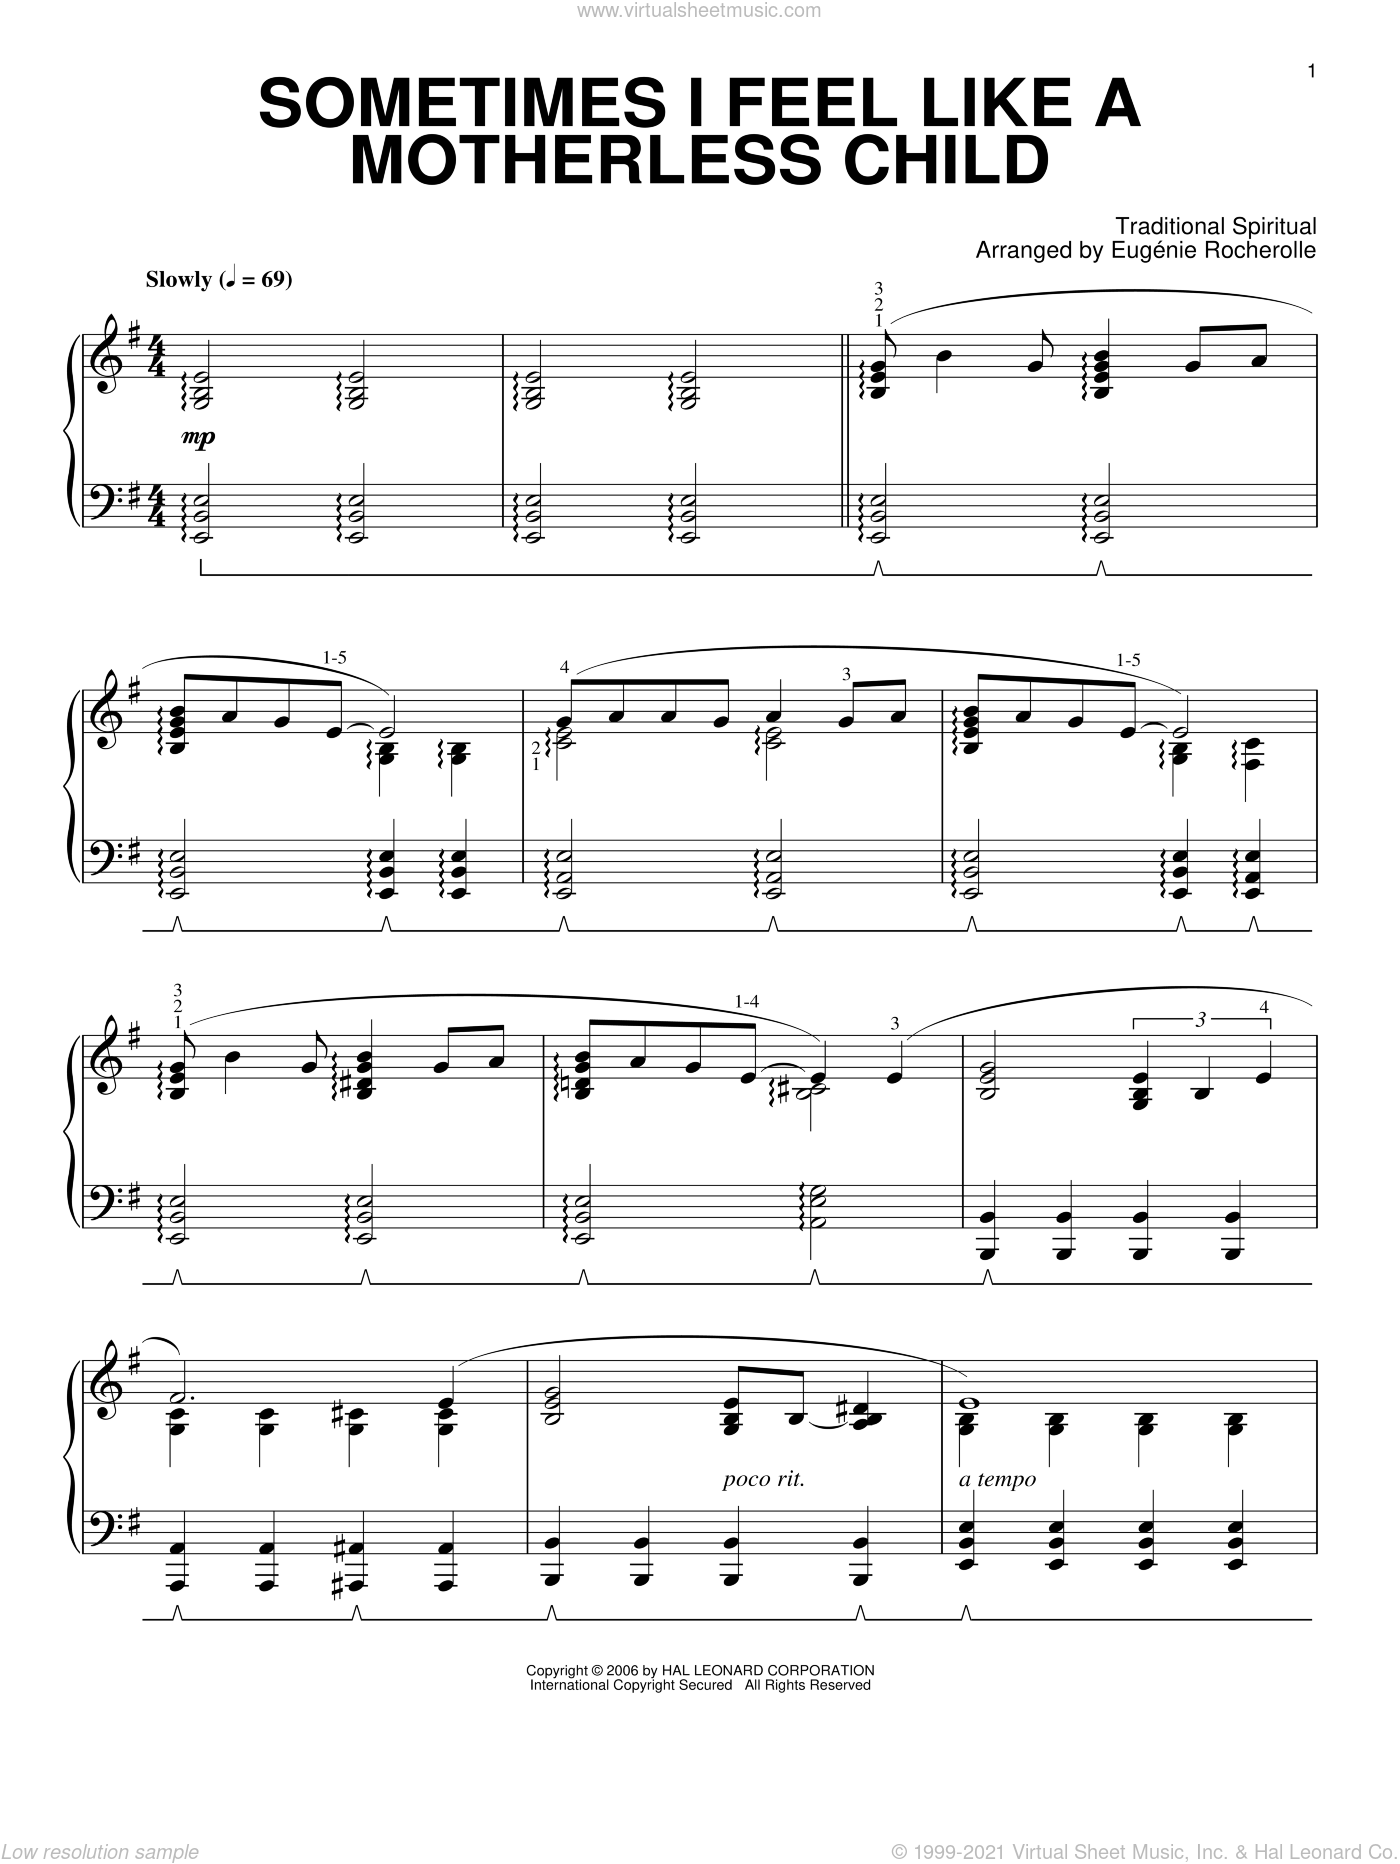 Sometimes I Feel Like A Motherless Child sheet music for piano solo  and Eugenie Rocherolle, intermediate skill level